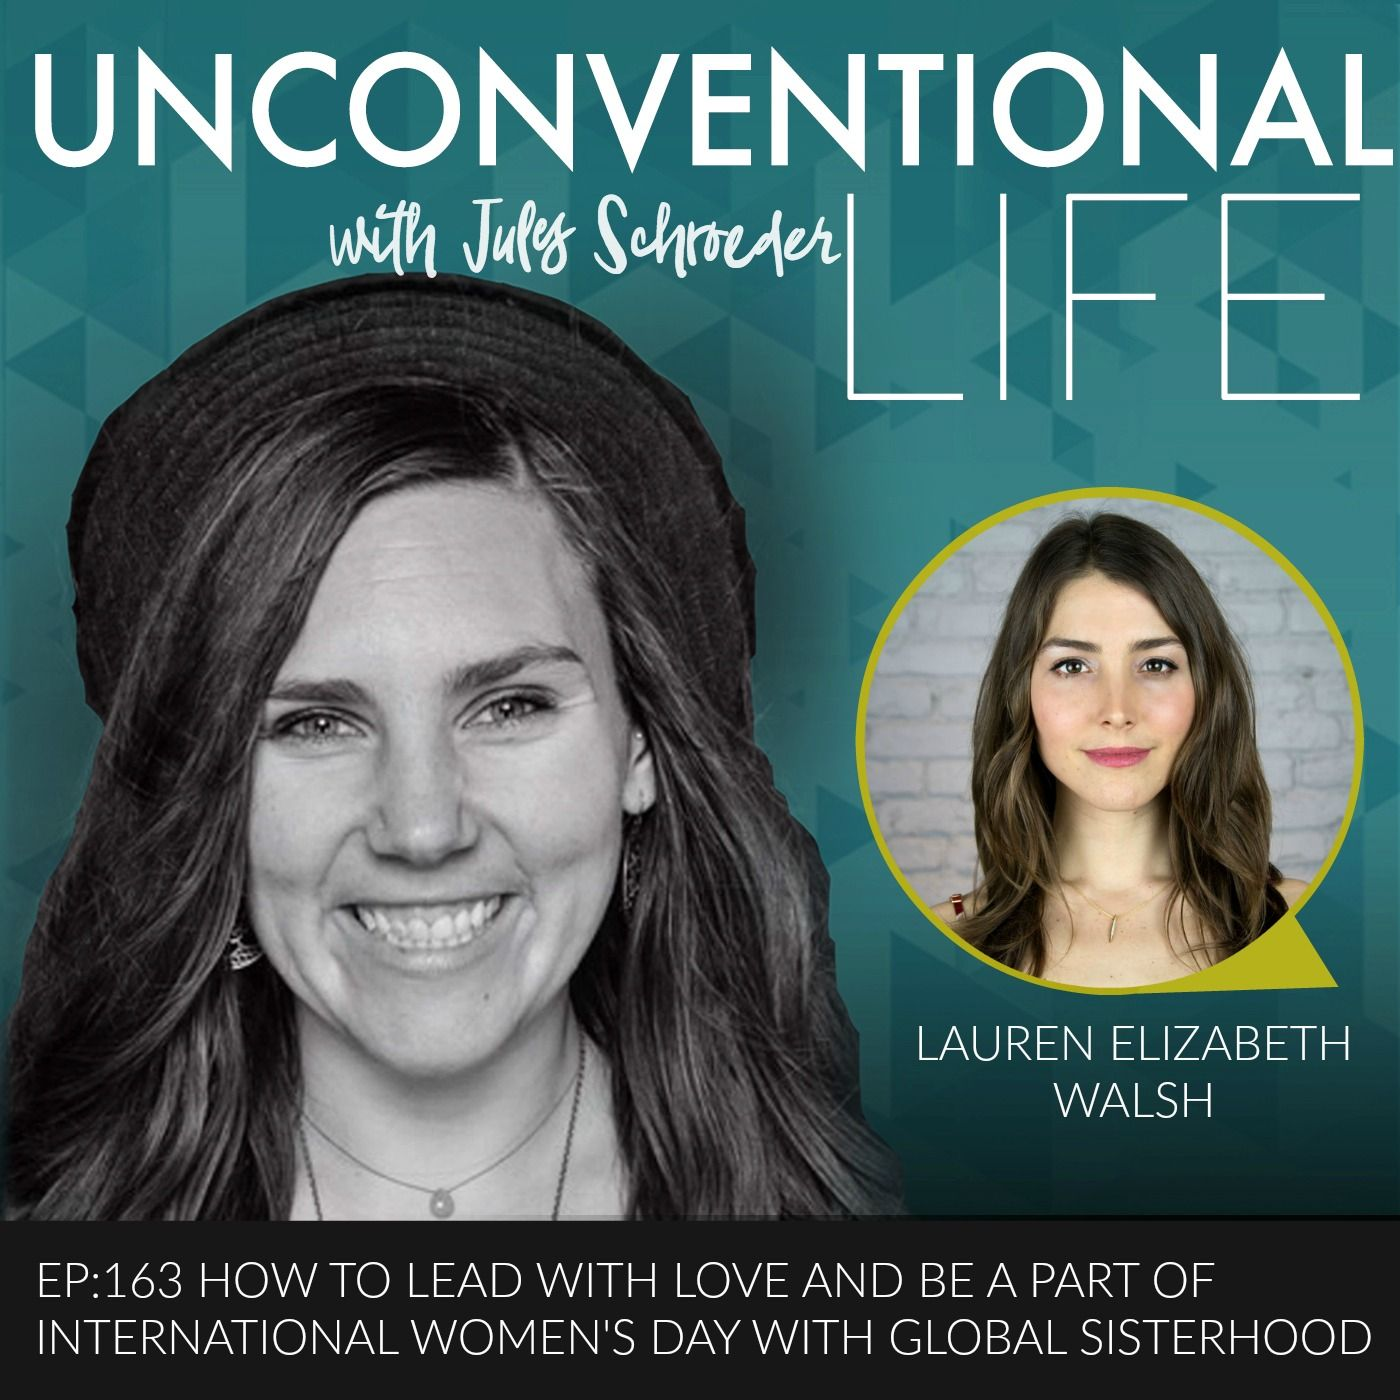 EP:163 How to Lead with Love and Be a Part of International Women's Day with Global Sisterhood